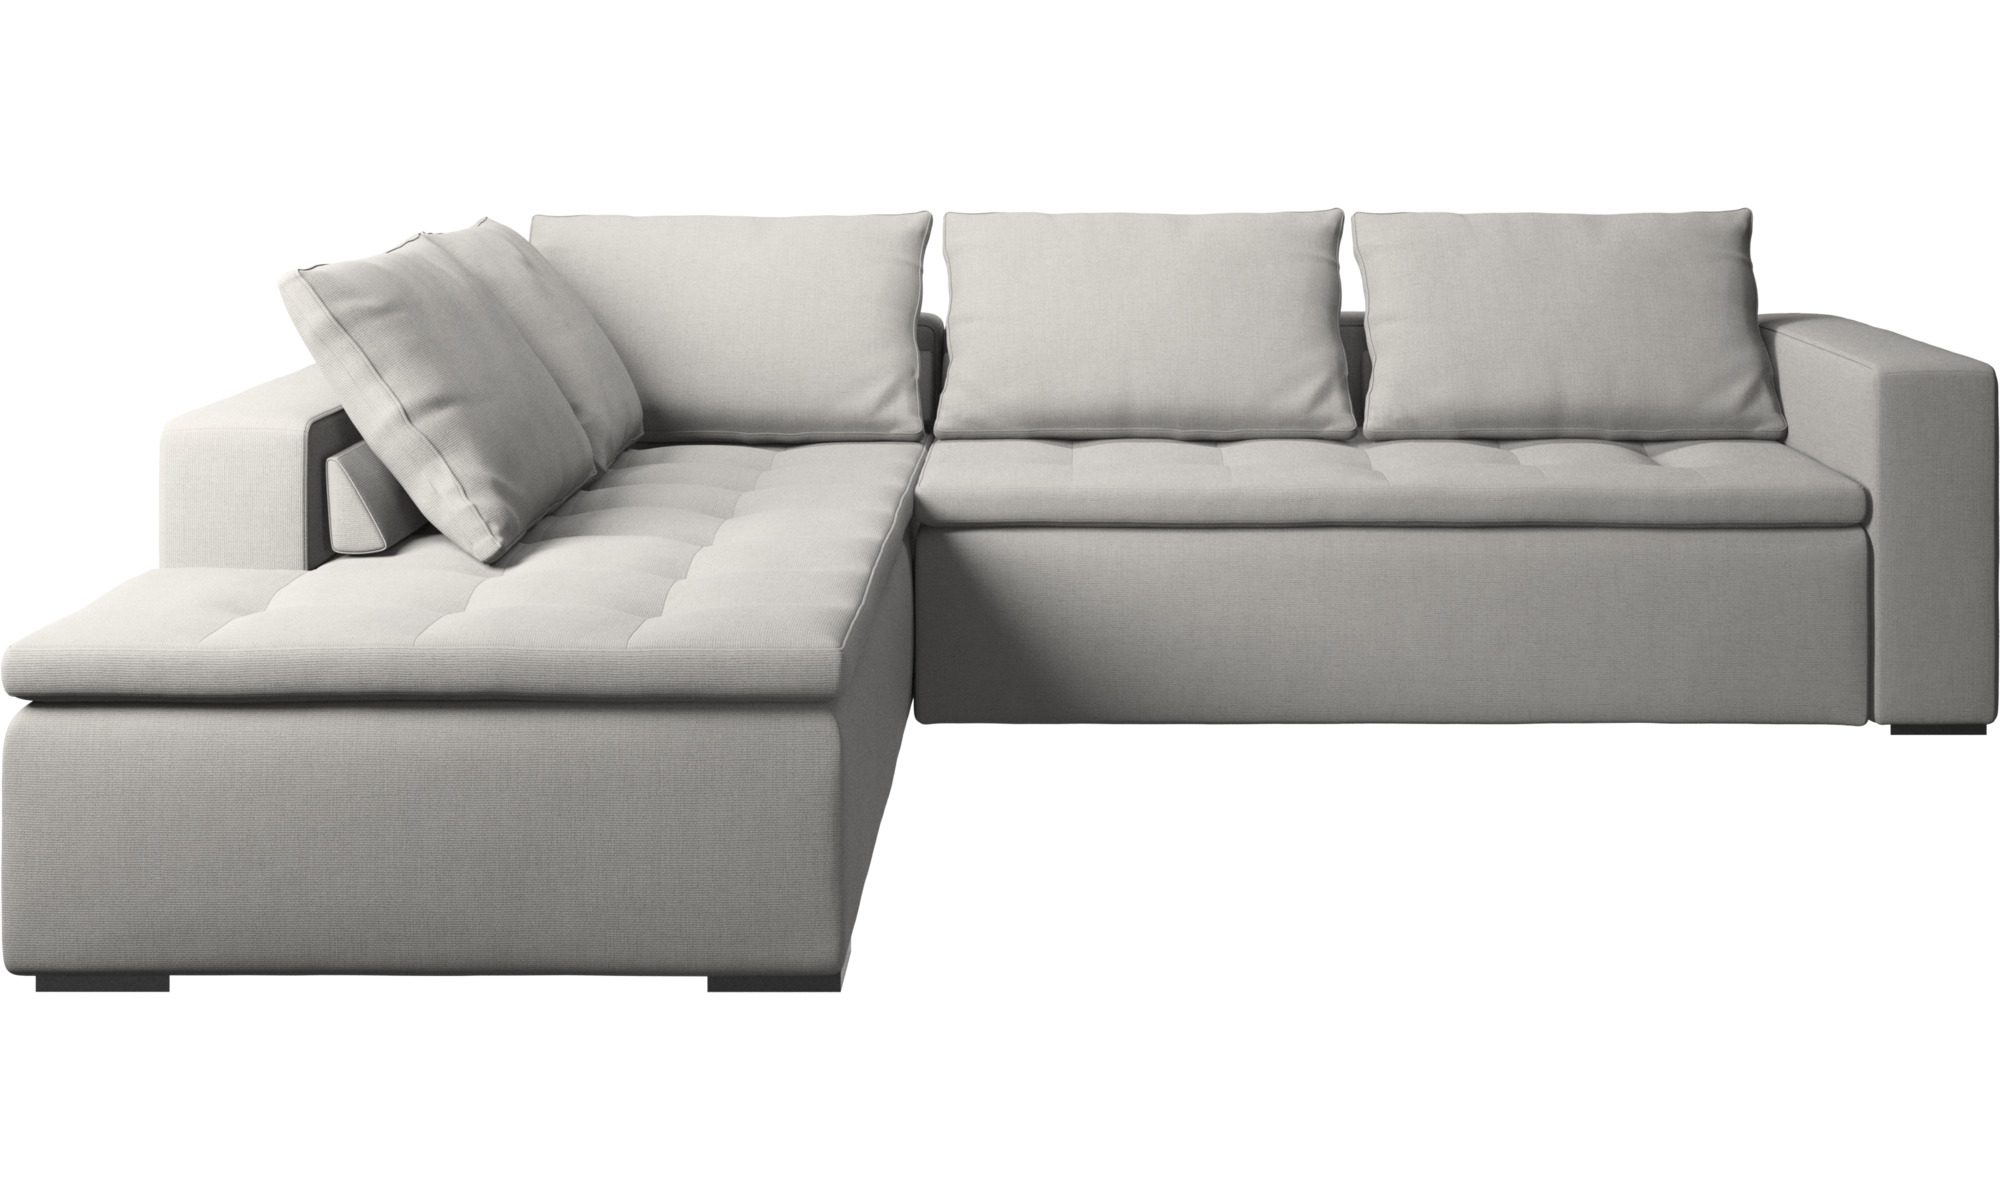 Sofas with open end